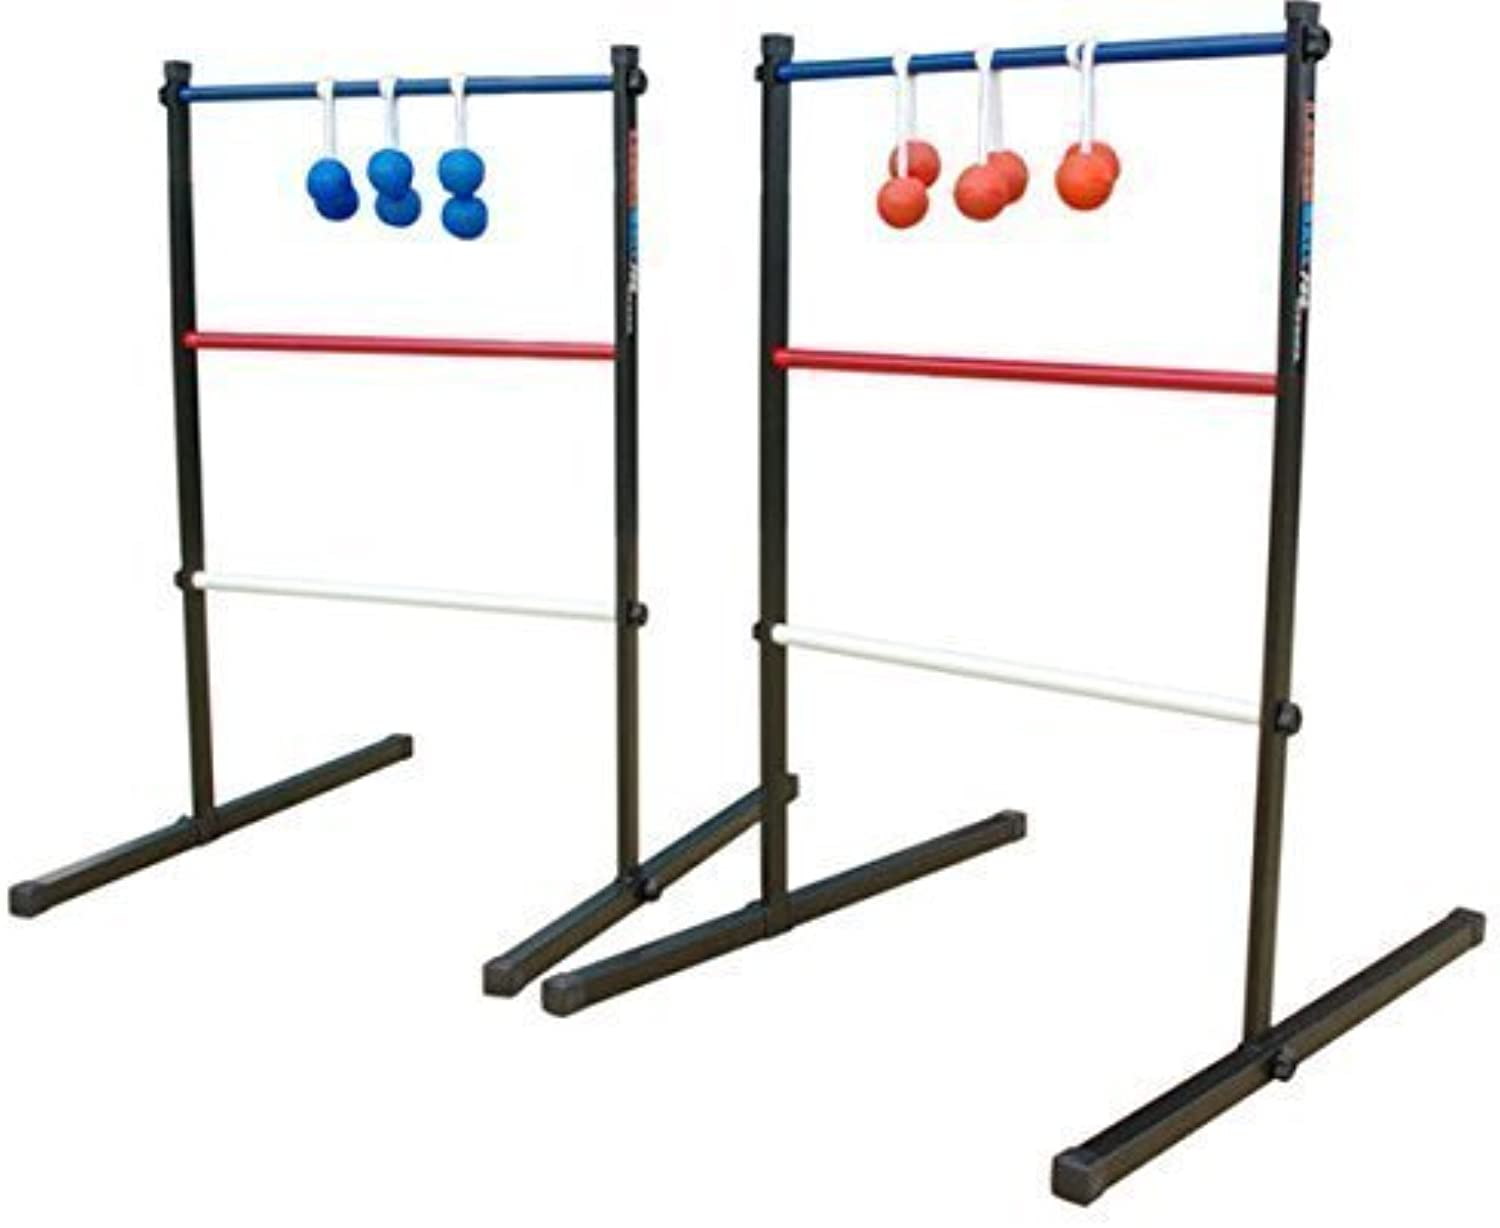 Maranda Enterprises Ladderball Pro Steel